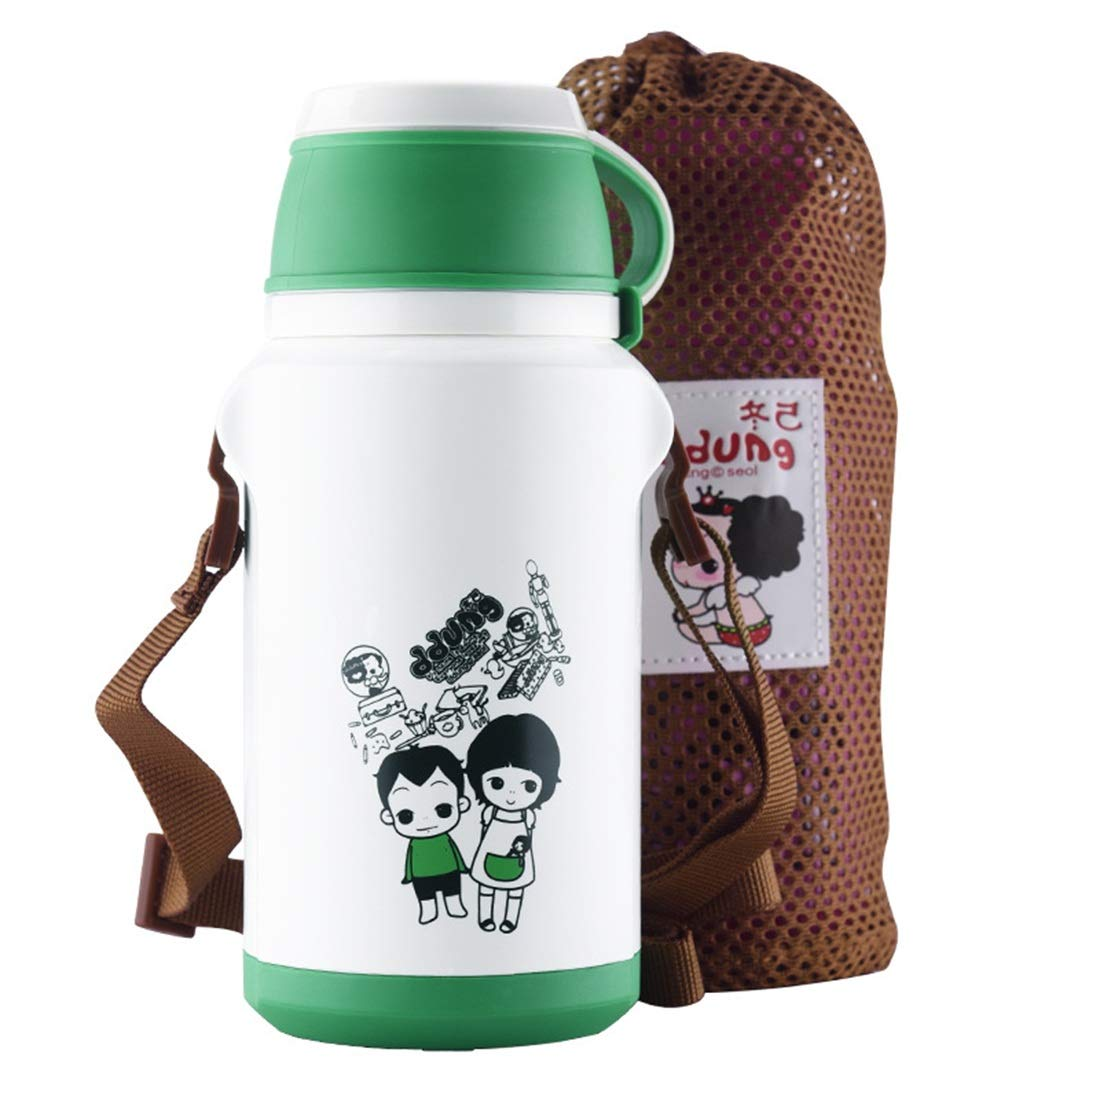 Yhui Stainless Steel Cup 2019 Vacuum Cup Children Portable Outdoor Leak Proof Cartoon with Cup Cover Stainless Steel Sports Cup/White (Color : White, Size : 350ml) by Yhui